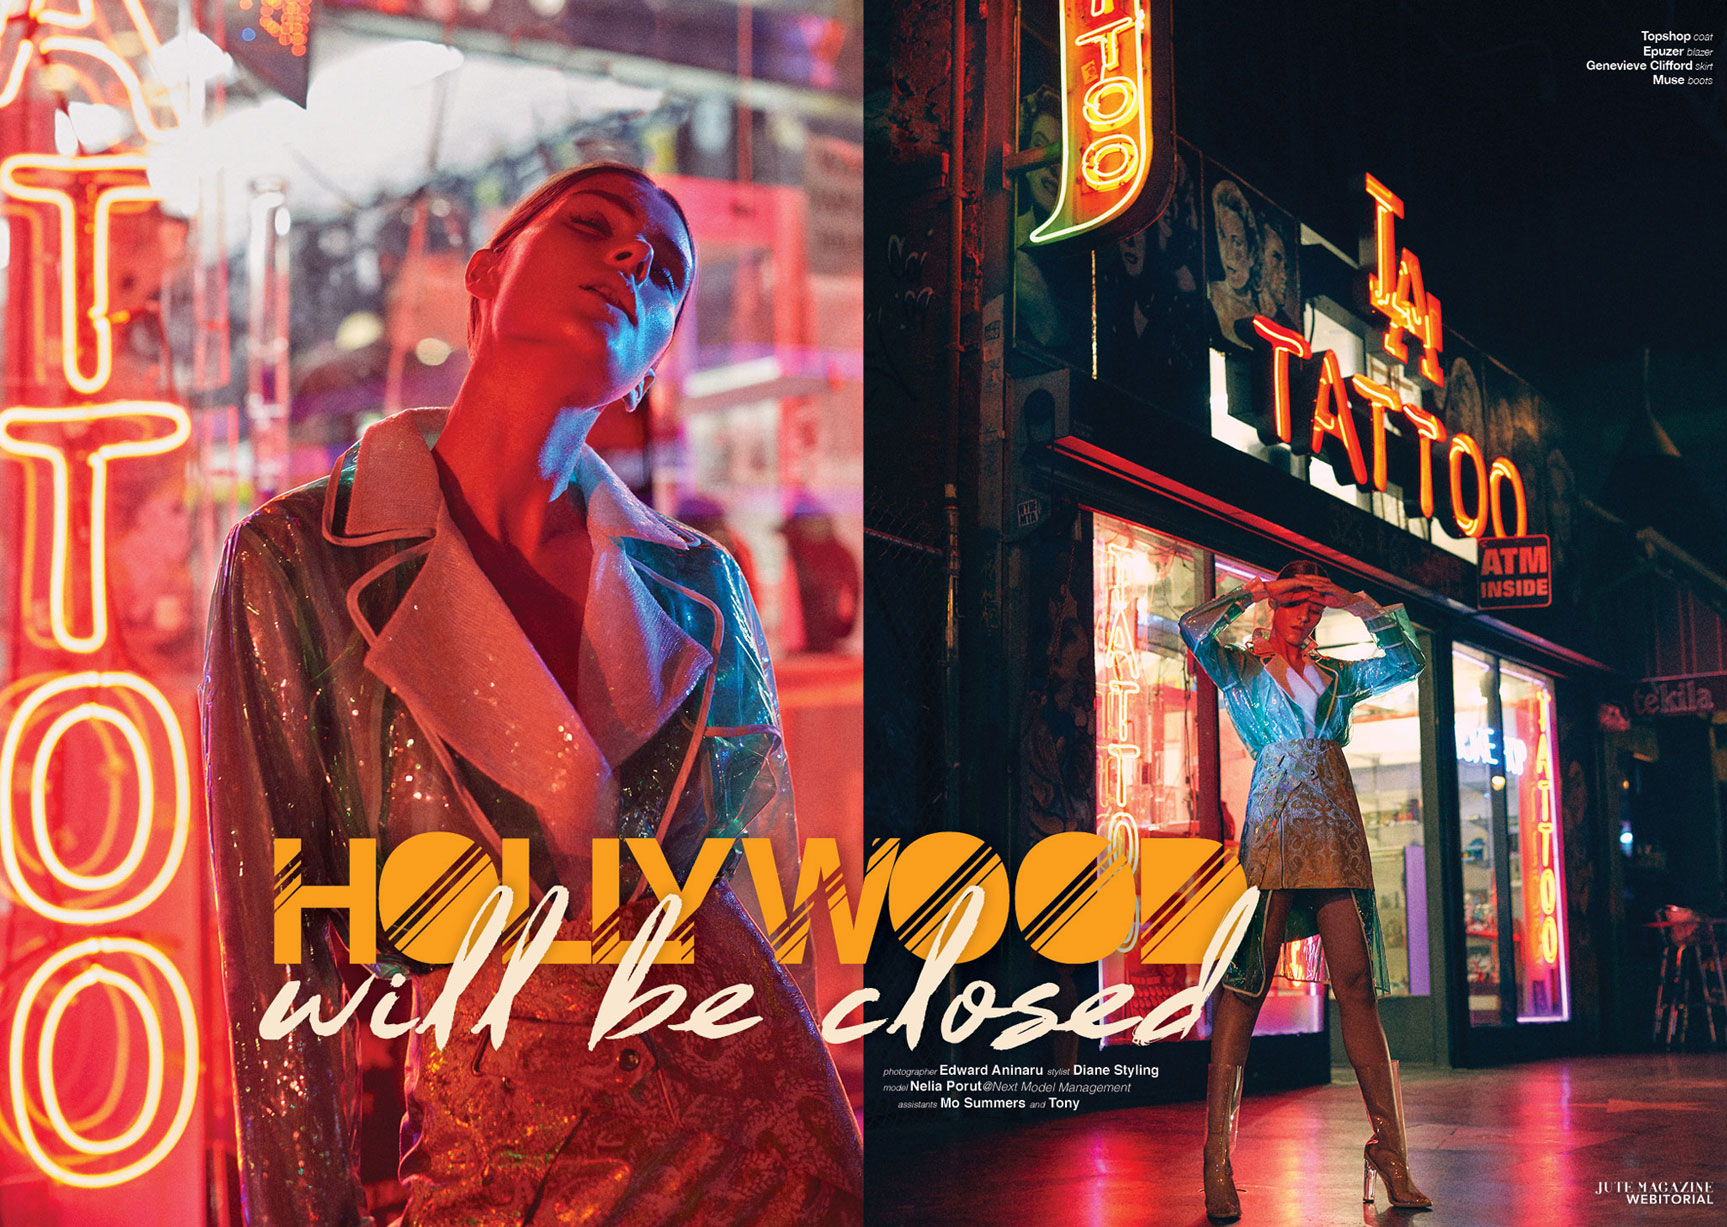 Hollywood Will Be Closed / Nelia Porut by Edward Aninaru